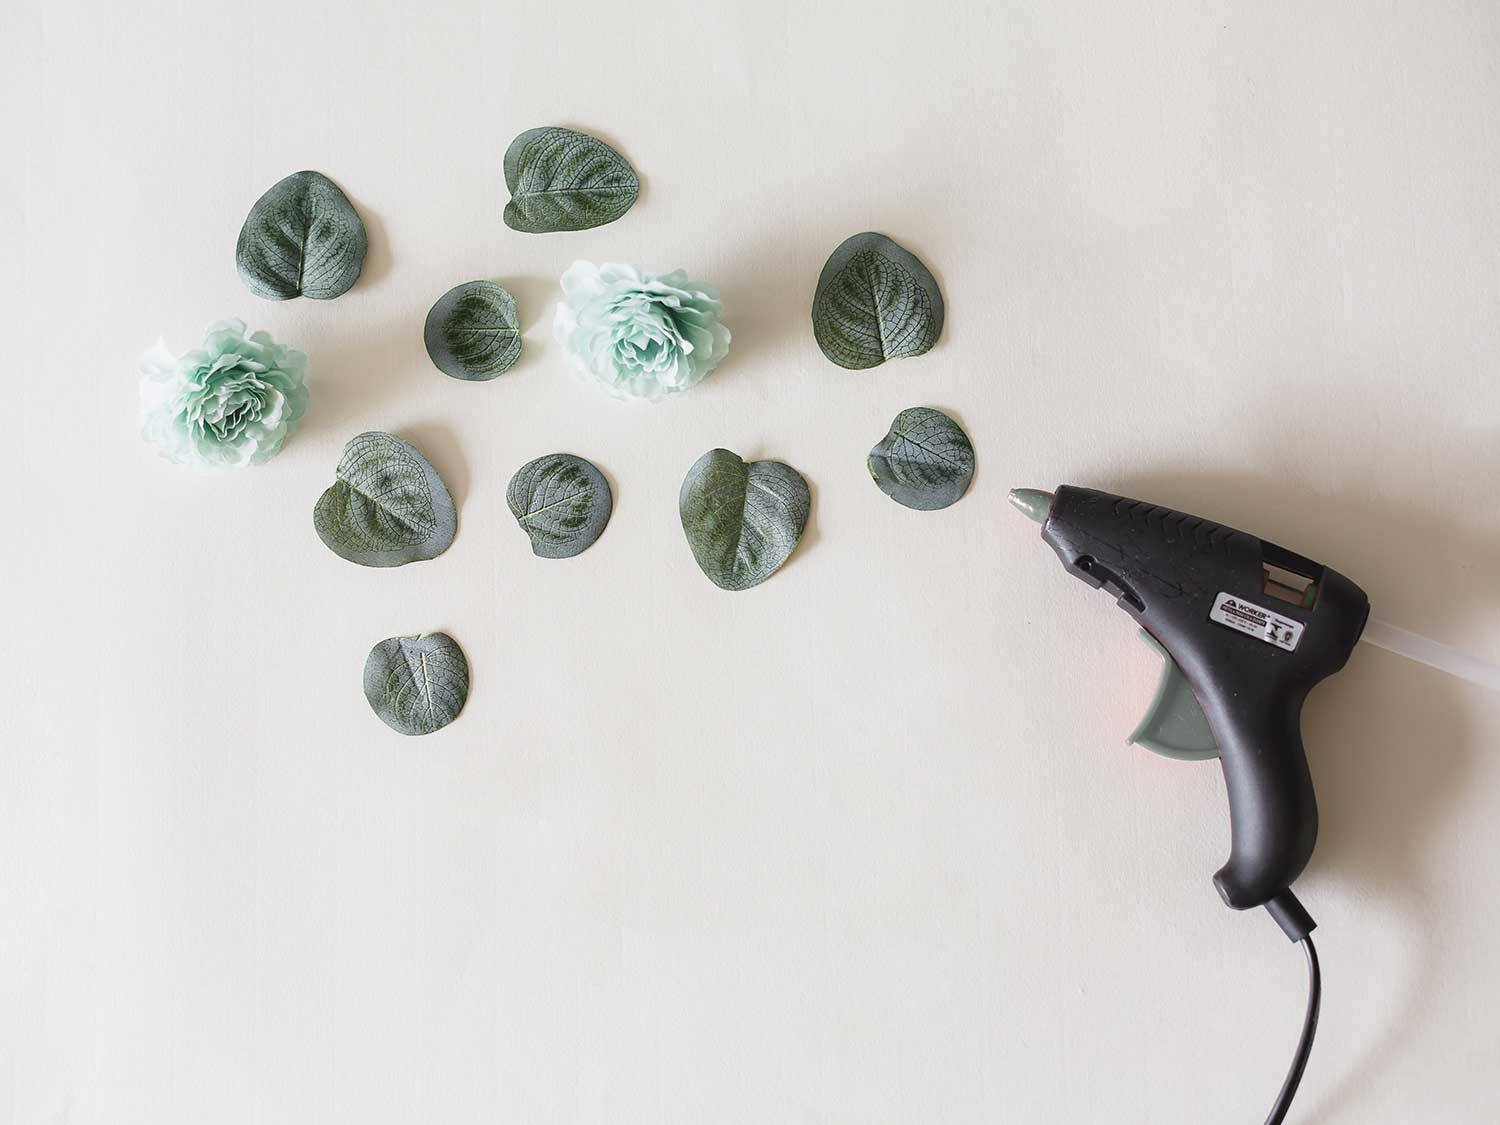 Securing fabric leaves with hot glue gun.